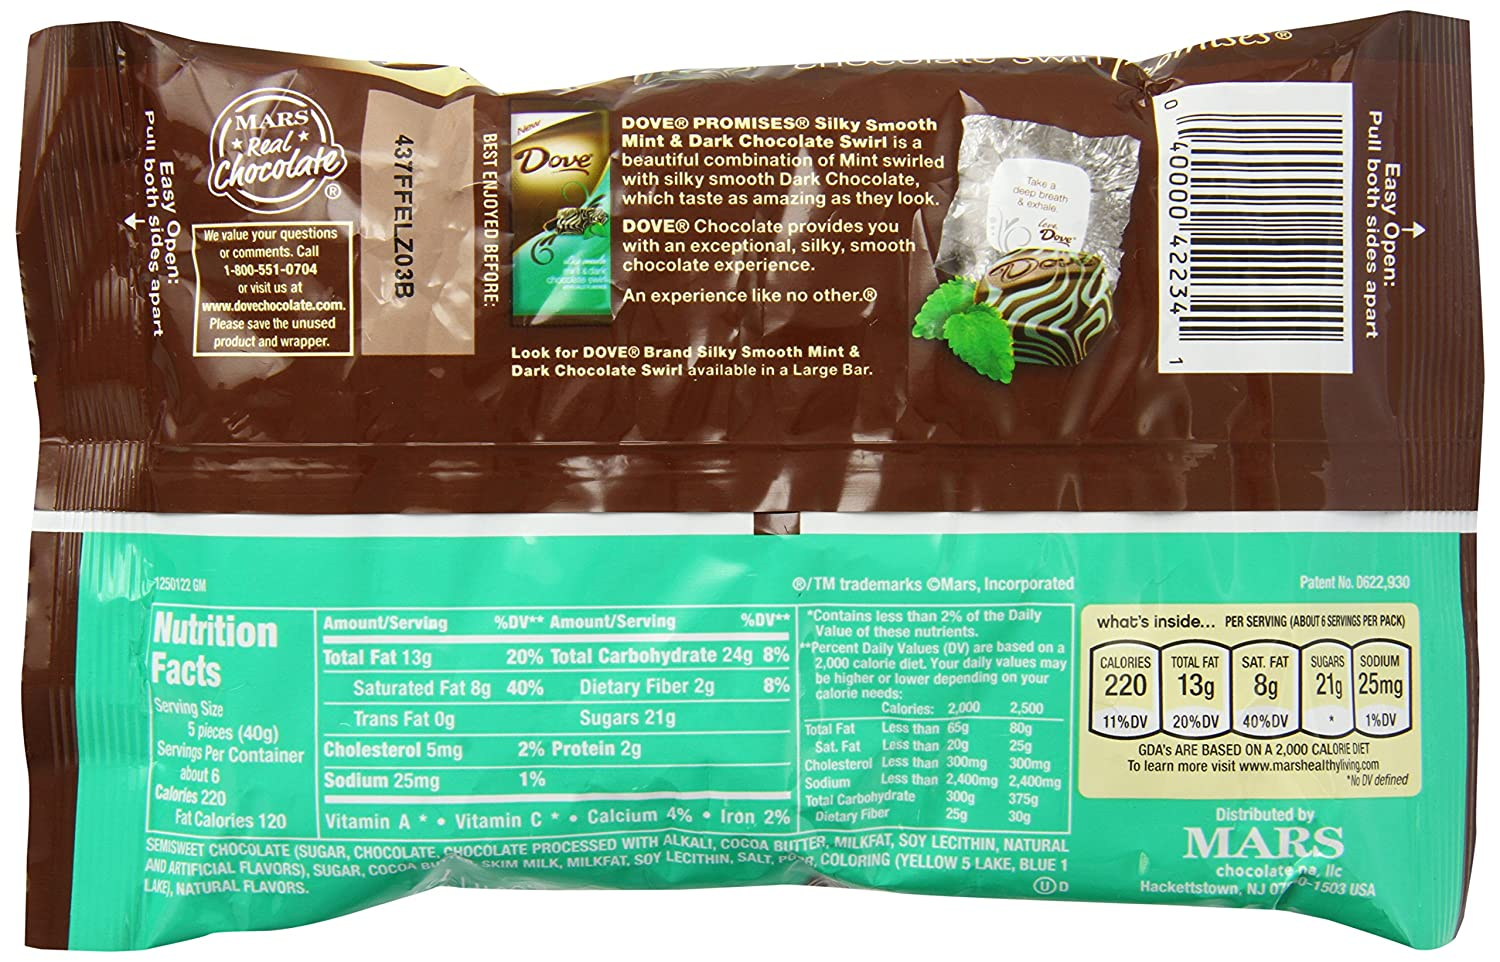 Calories In Dove Dark Chocolate Mint